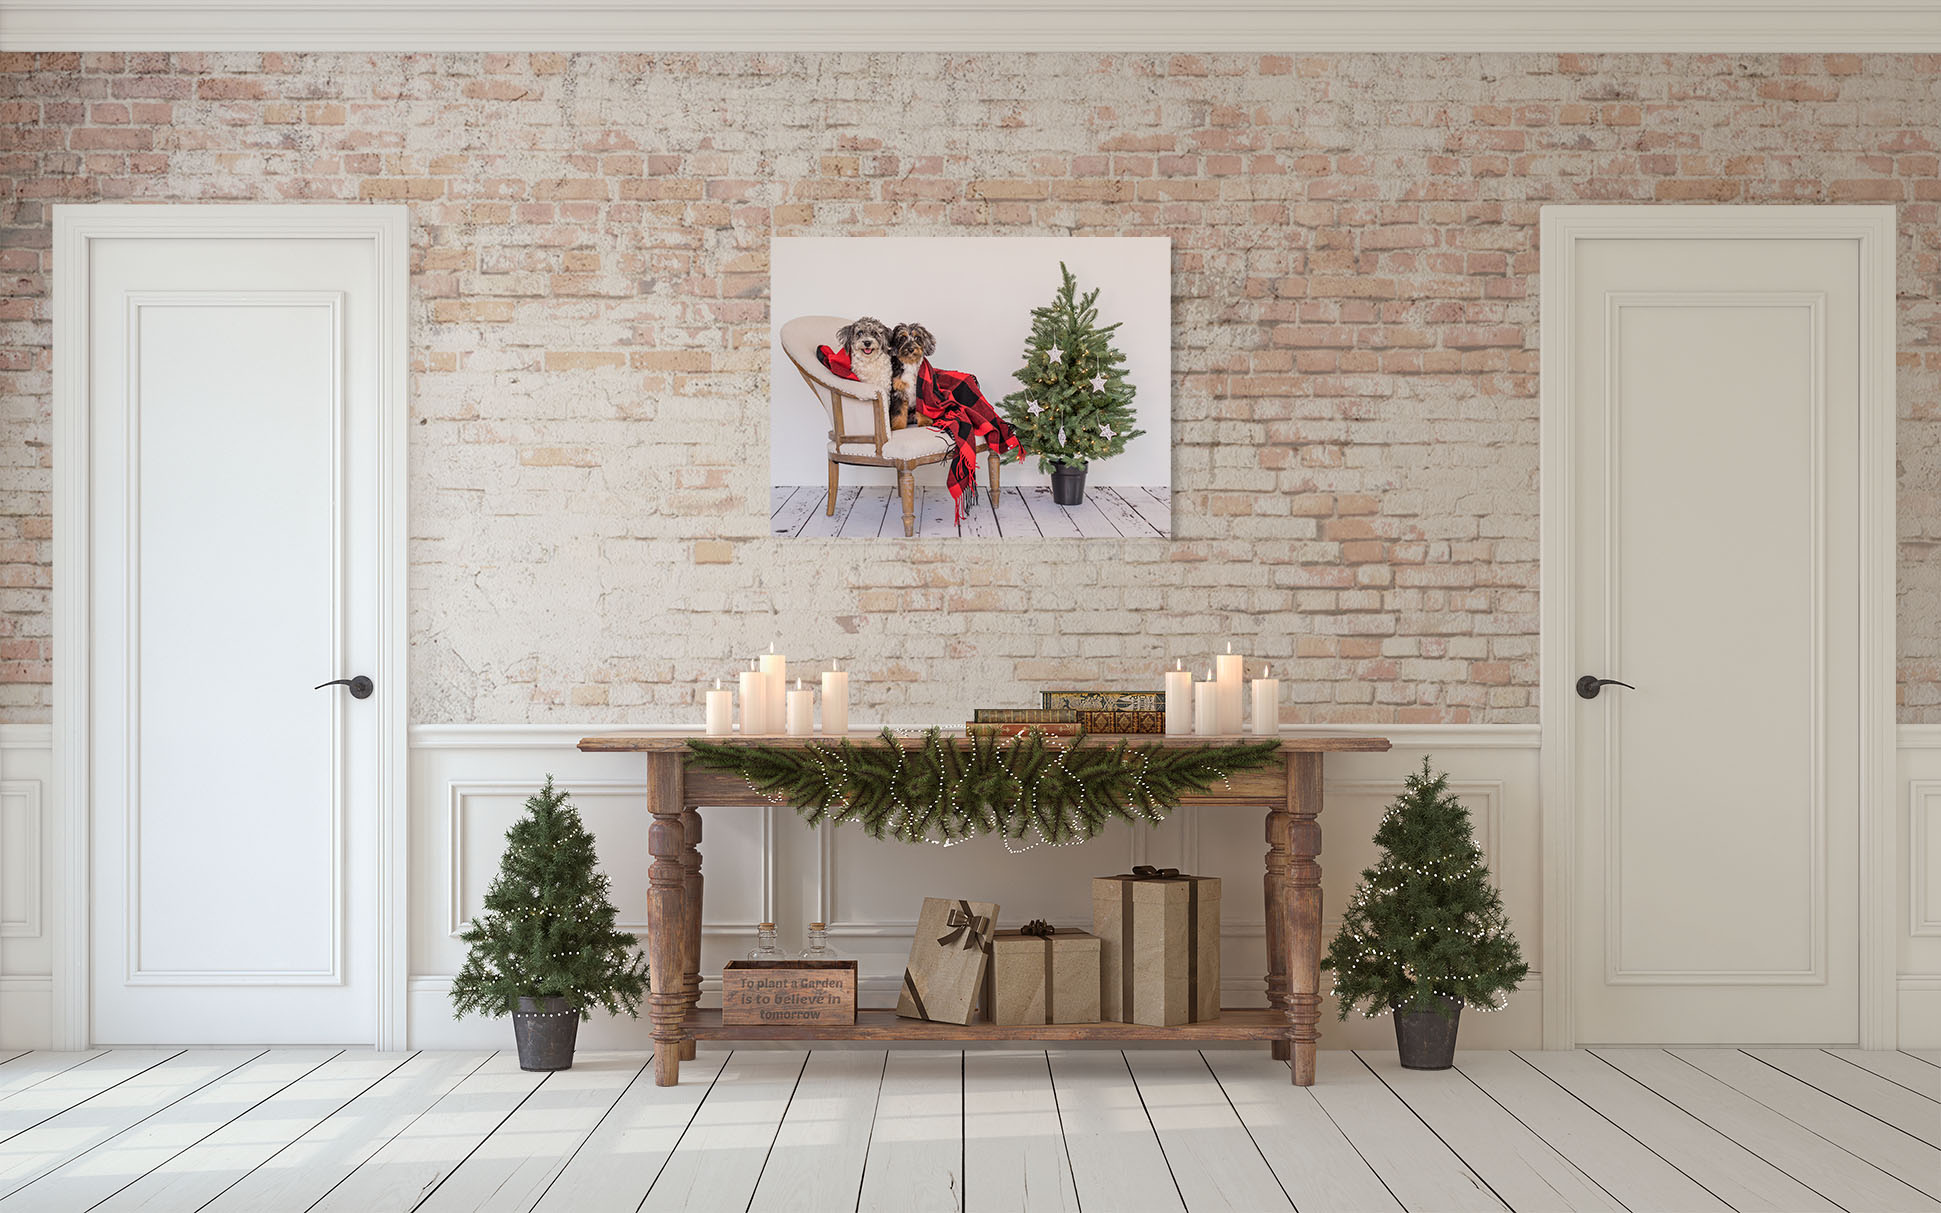 Decorate a guest room or even your master bedroom with a holiday portrait.